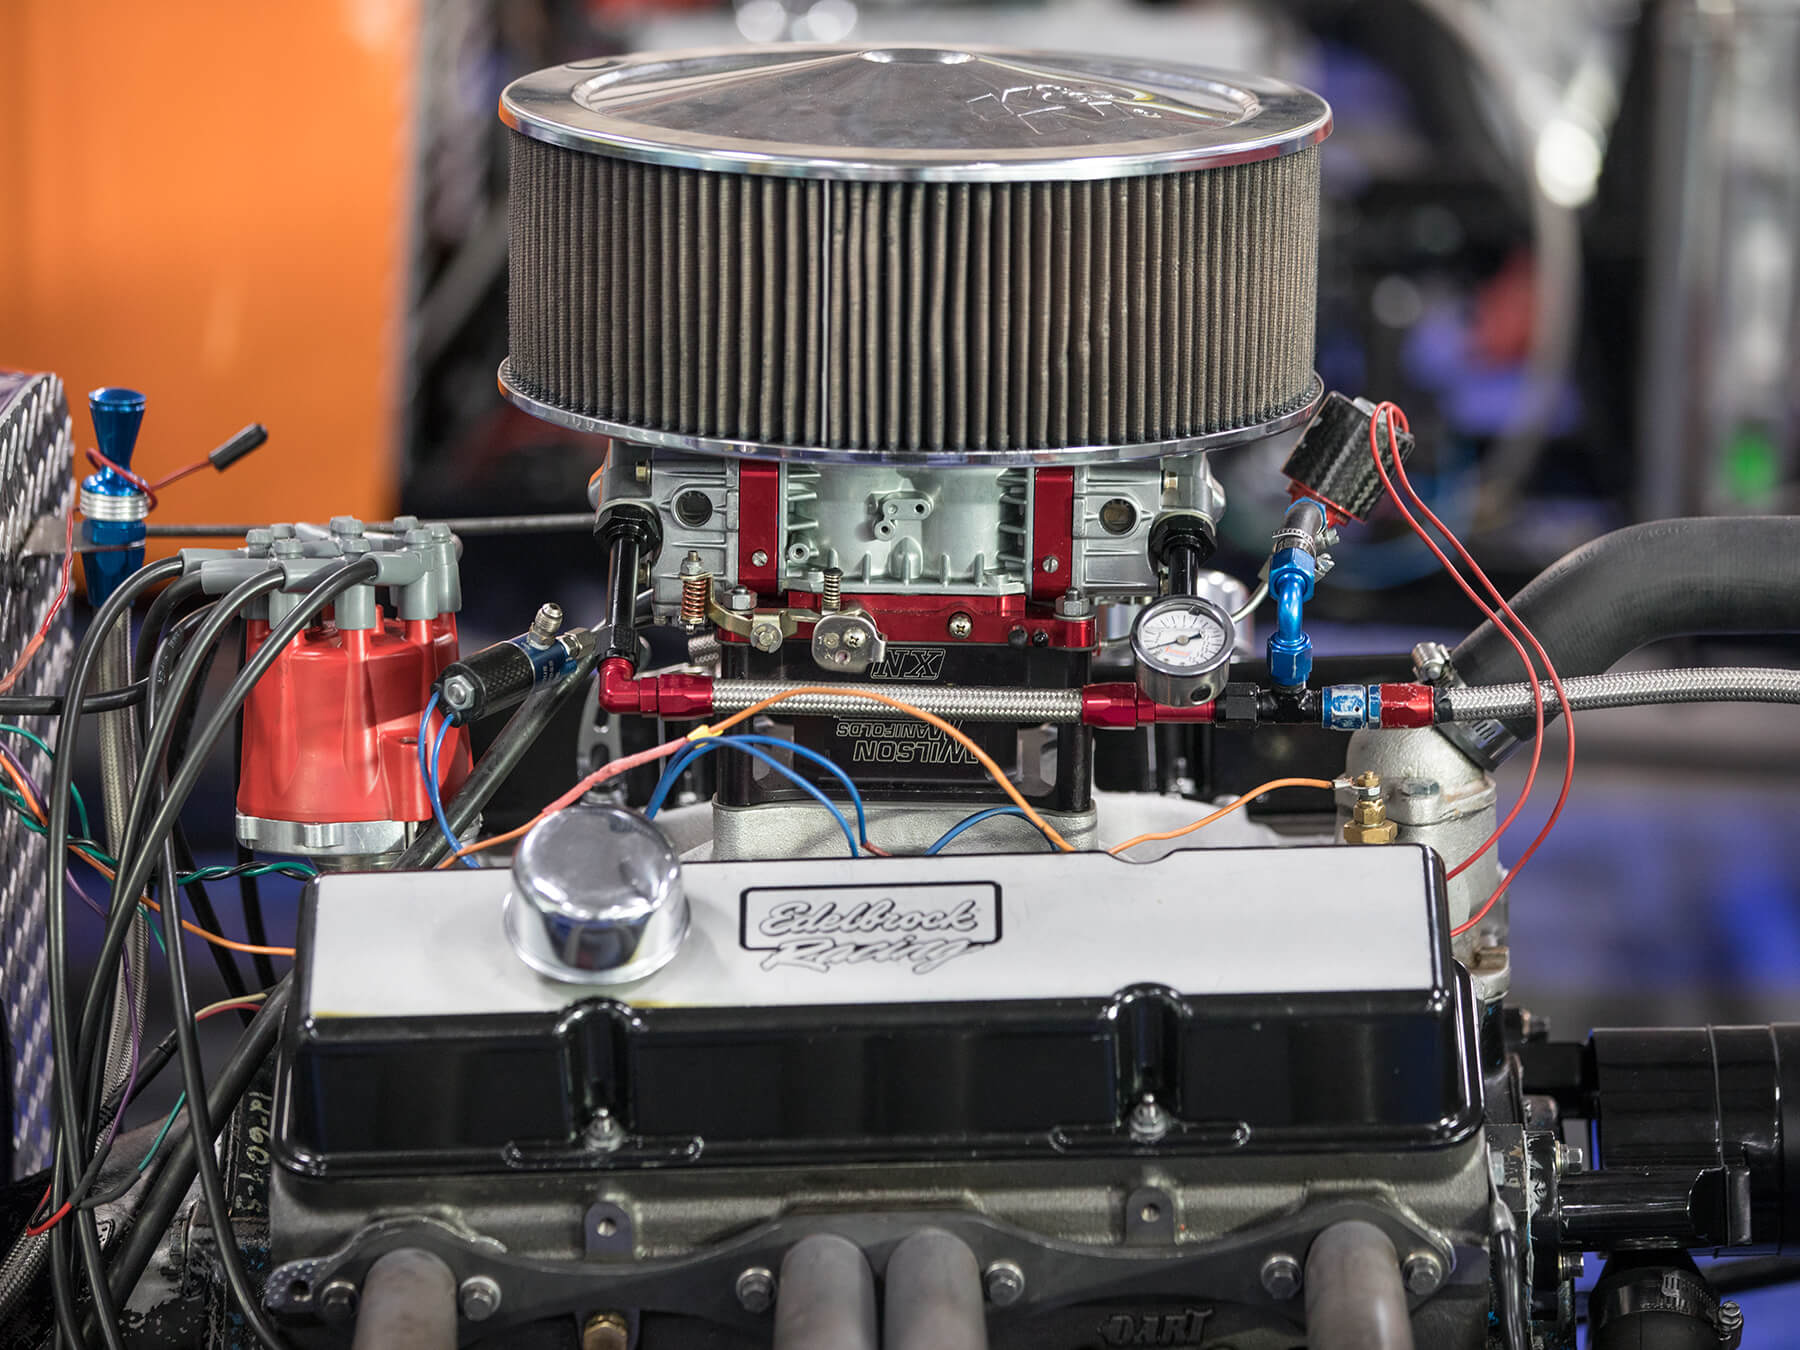 Close up photo of a Edelbrock racing engine inside of a t-bucket hotrod